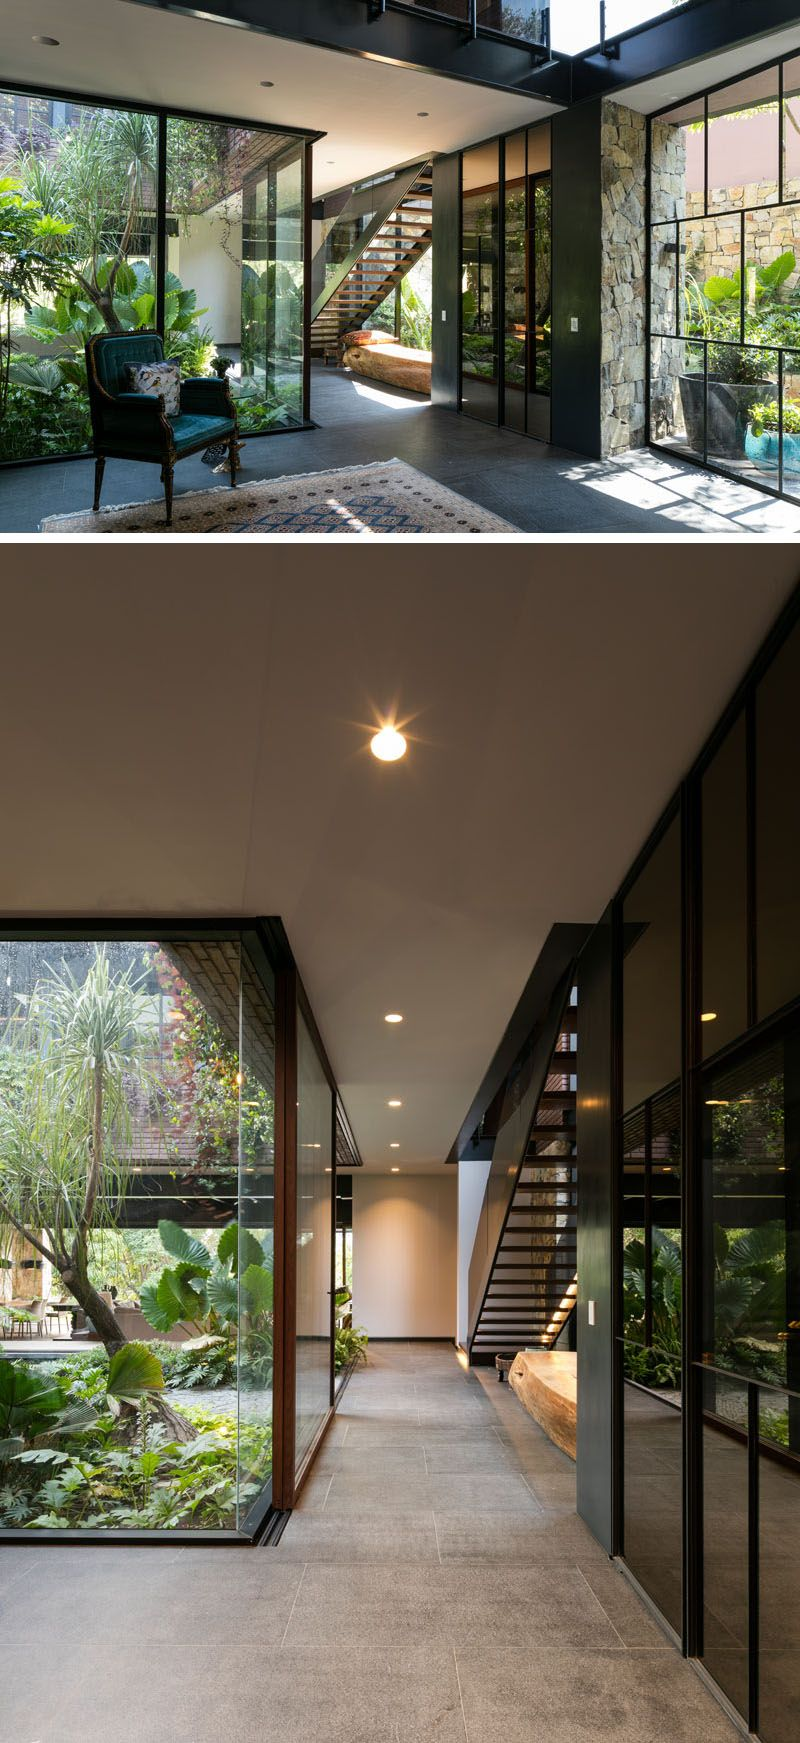 This modern house has a glass wall that shows off the internal courtyard from hallway